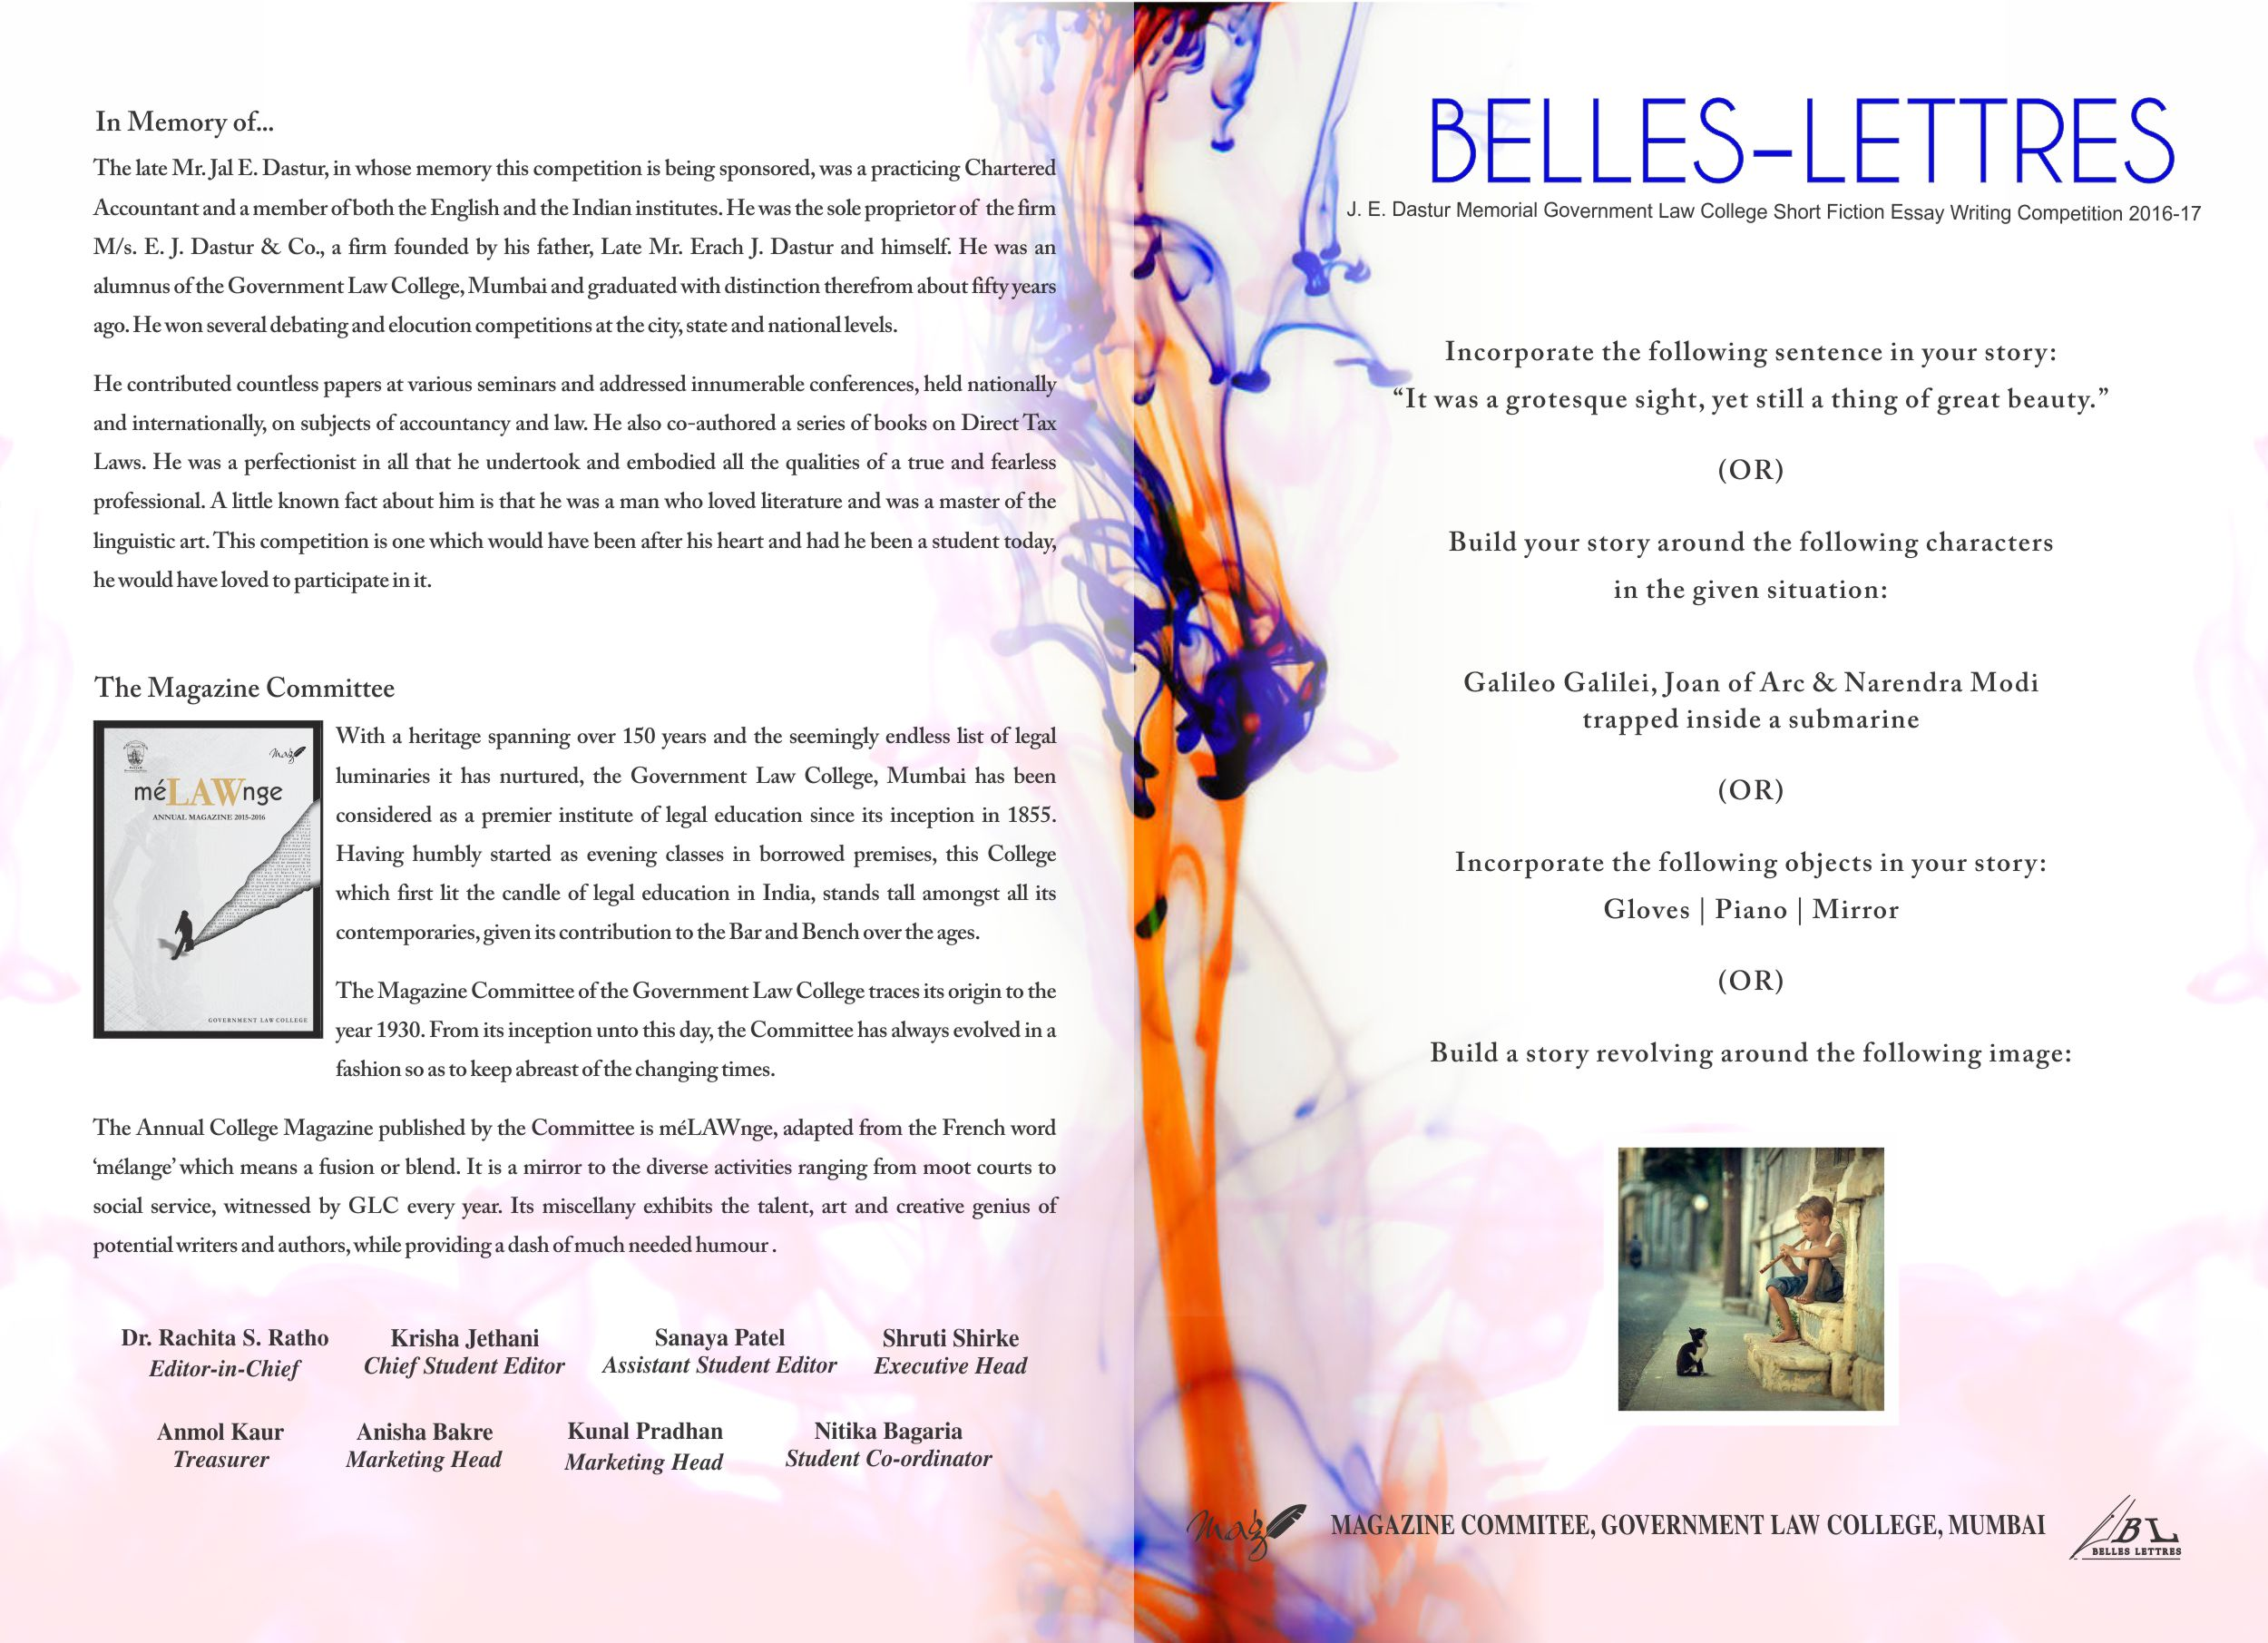 belles lettres glc short fiction writing competition  belles lettres j e dastur memorial government law college fiction essay writing competition